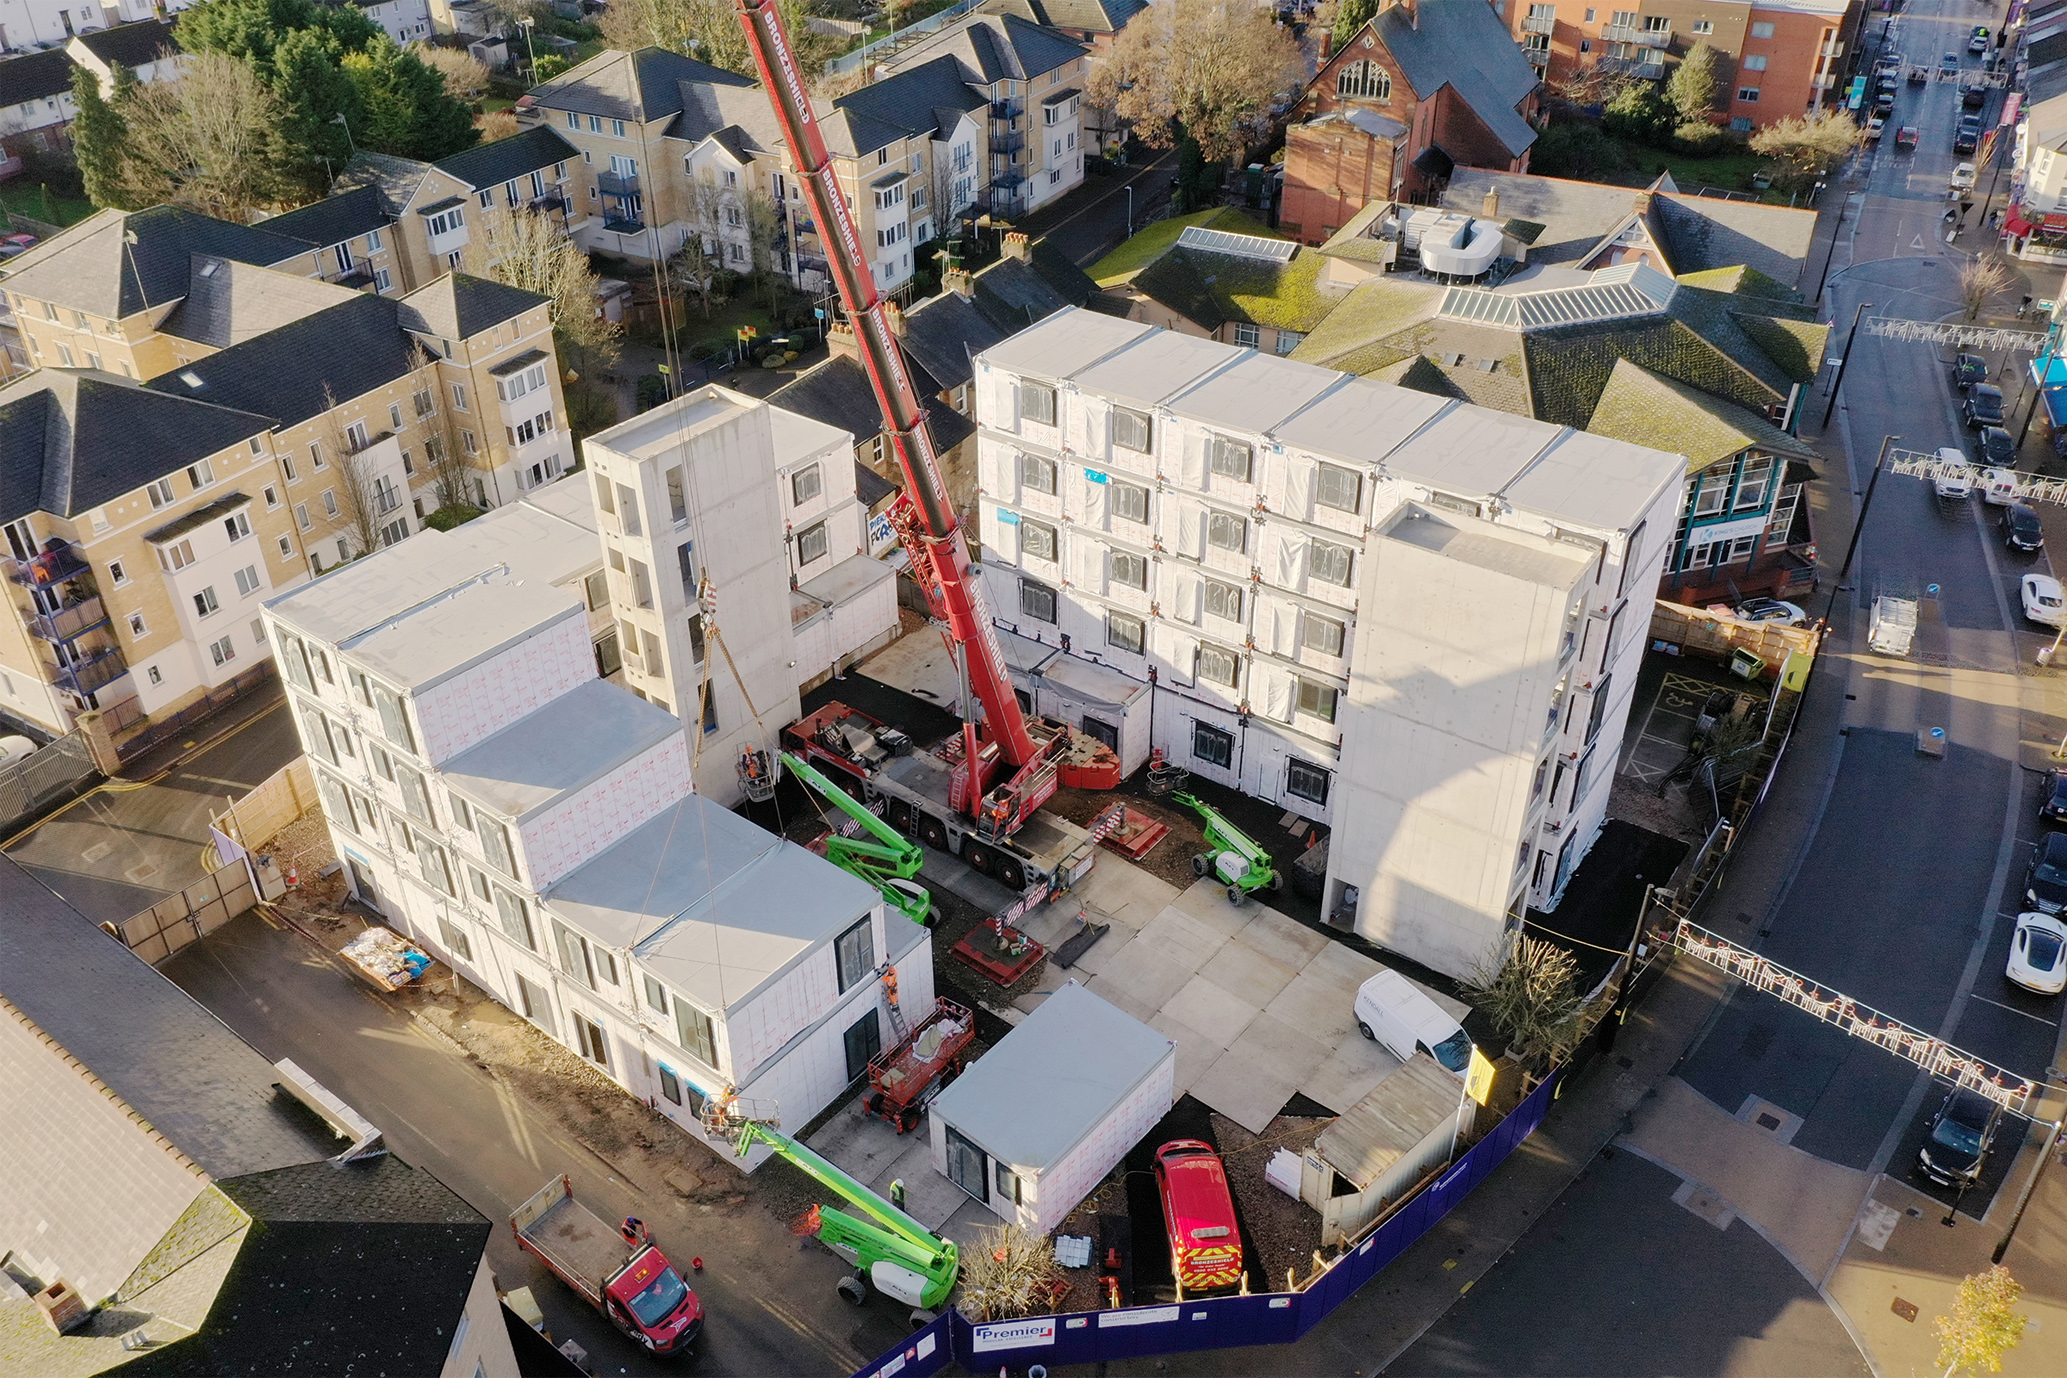 Premier Modular Achieves BOPAS Accreditation for its Modular Apartments Following Expansion into Residential